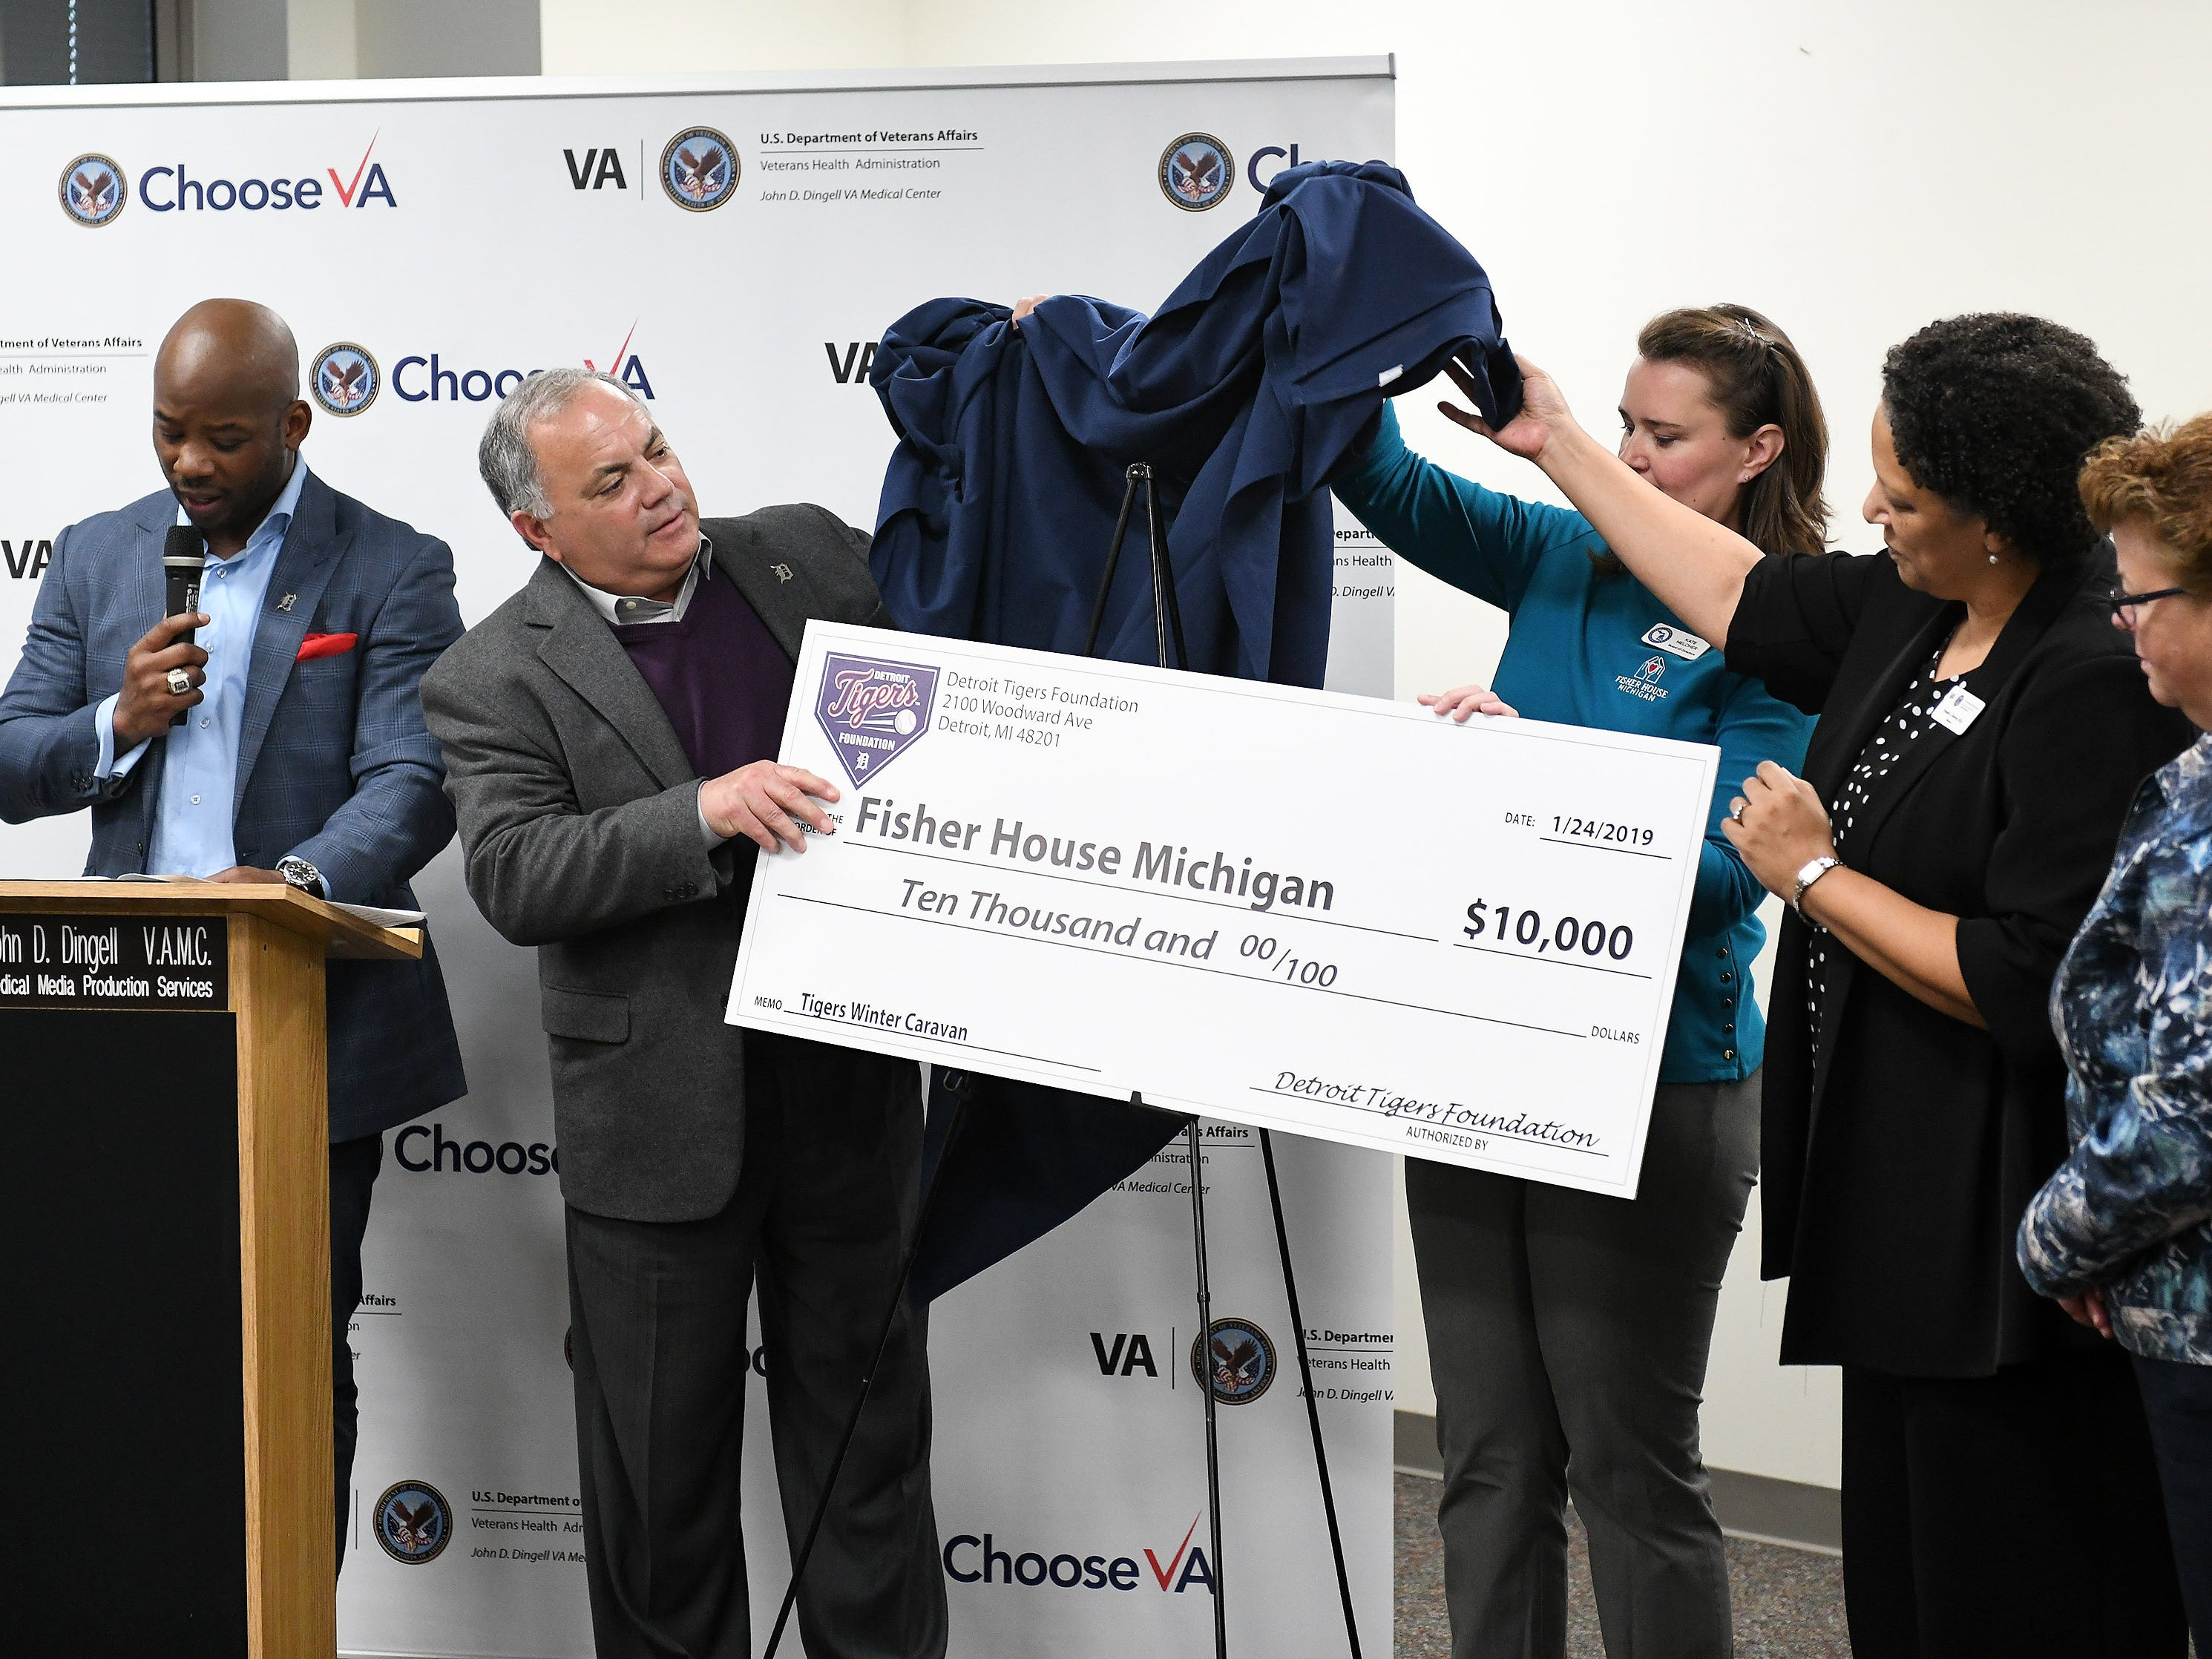 Tigers executive vice president of baseball operations and general manager Al Avila unveils a check towards the Fisher House which will be built near the VA Medical Center during a stop on the 2019 Detroit Tigers Winter Caravan at the John D. Dingell VA Medical Center in Detroit on Jan. 24, 2019.